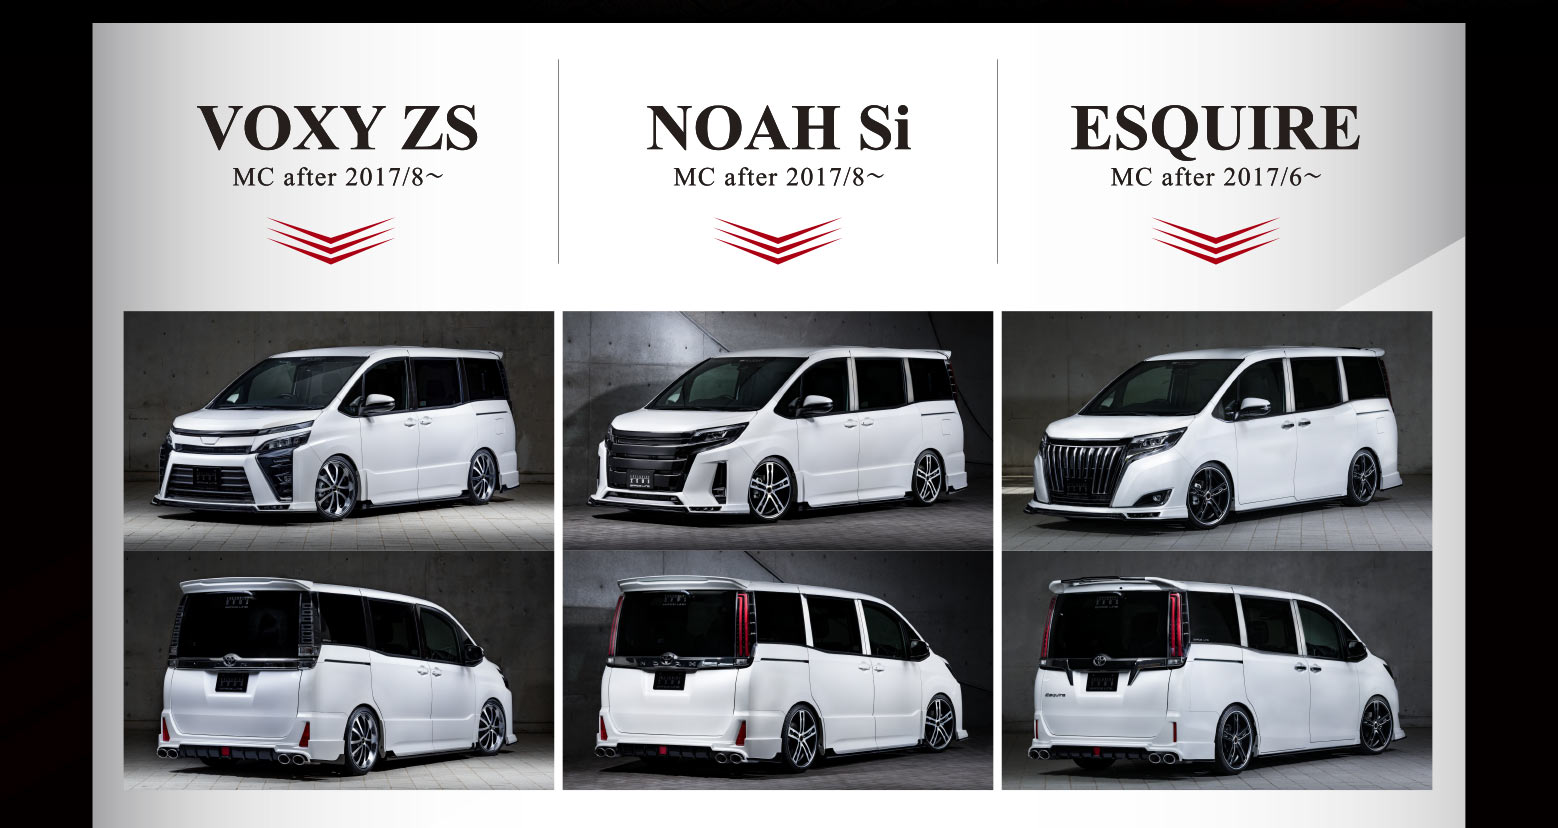 VOXY ZS MC after 2017/8~ NOAH Si MC after 2017/8~ ESQUIRE MC after 2017/6~